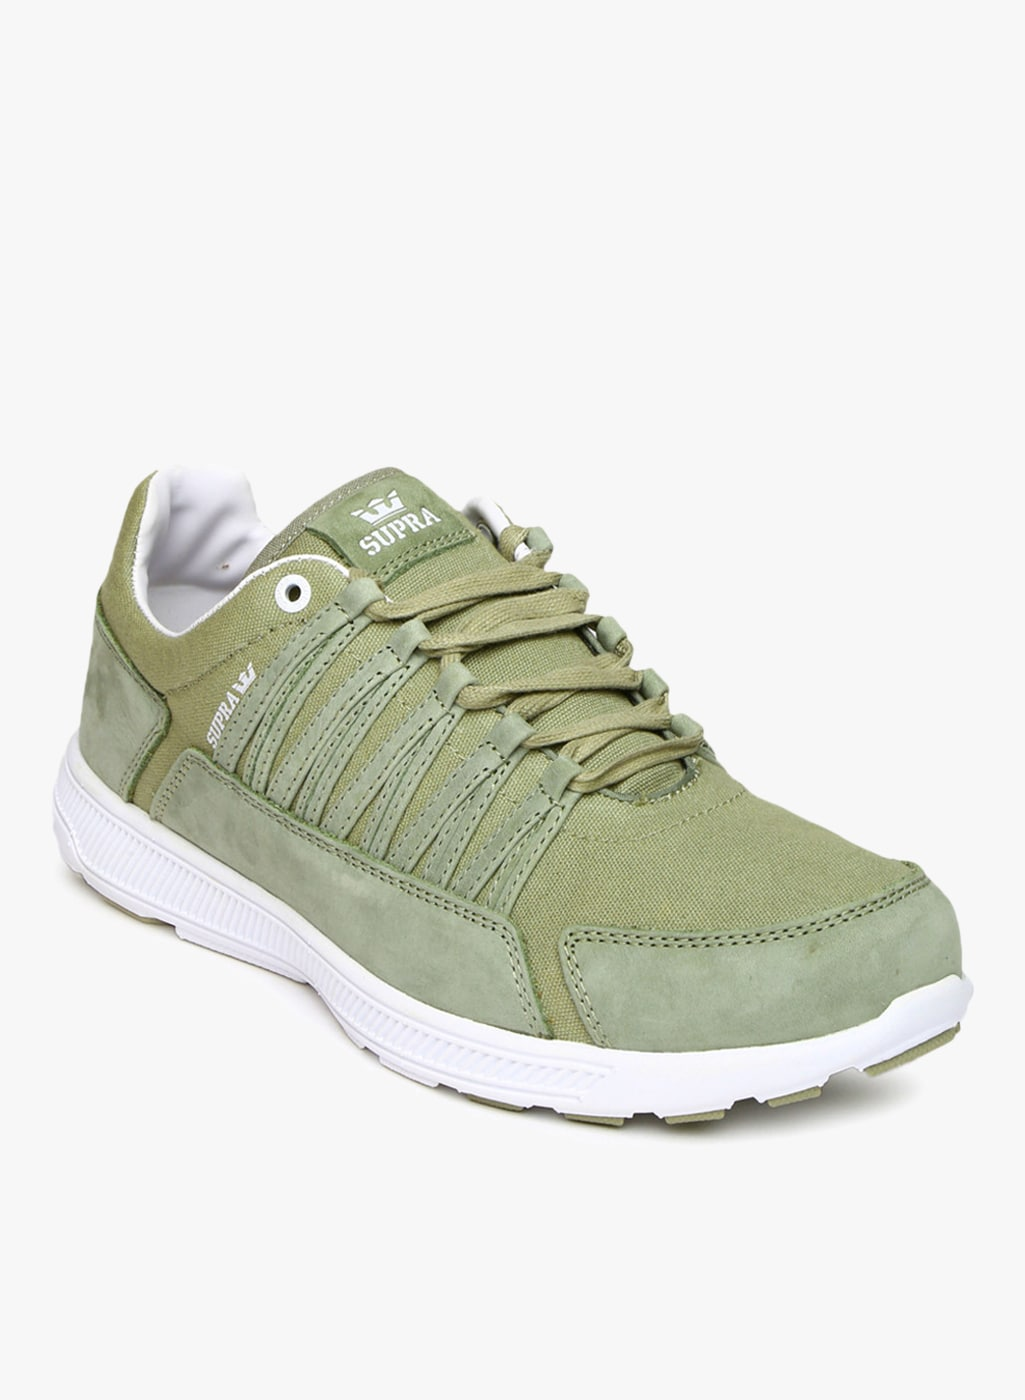 da567acba7929e Supra Olive Casual Shoes - Buy Supra Olive Casual Shoes online in India